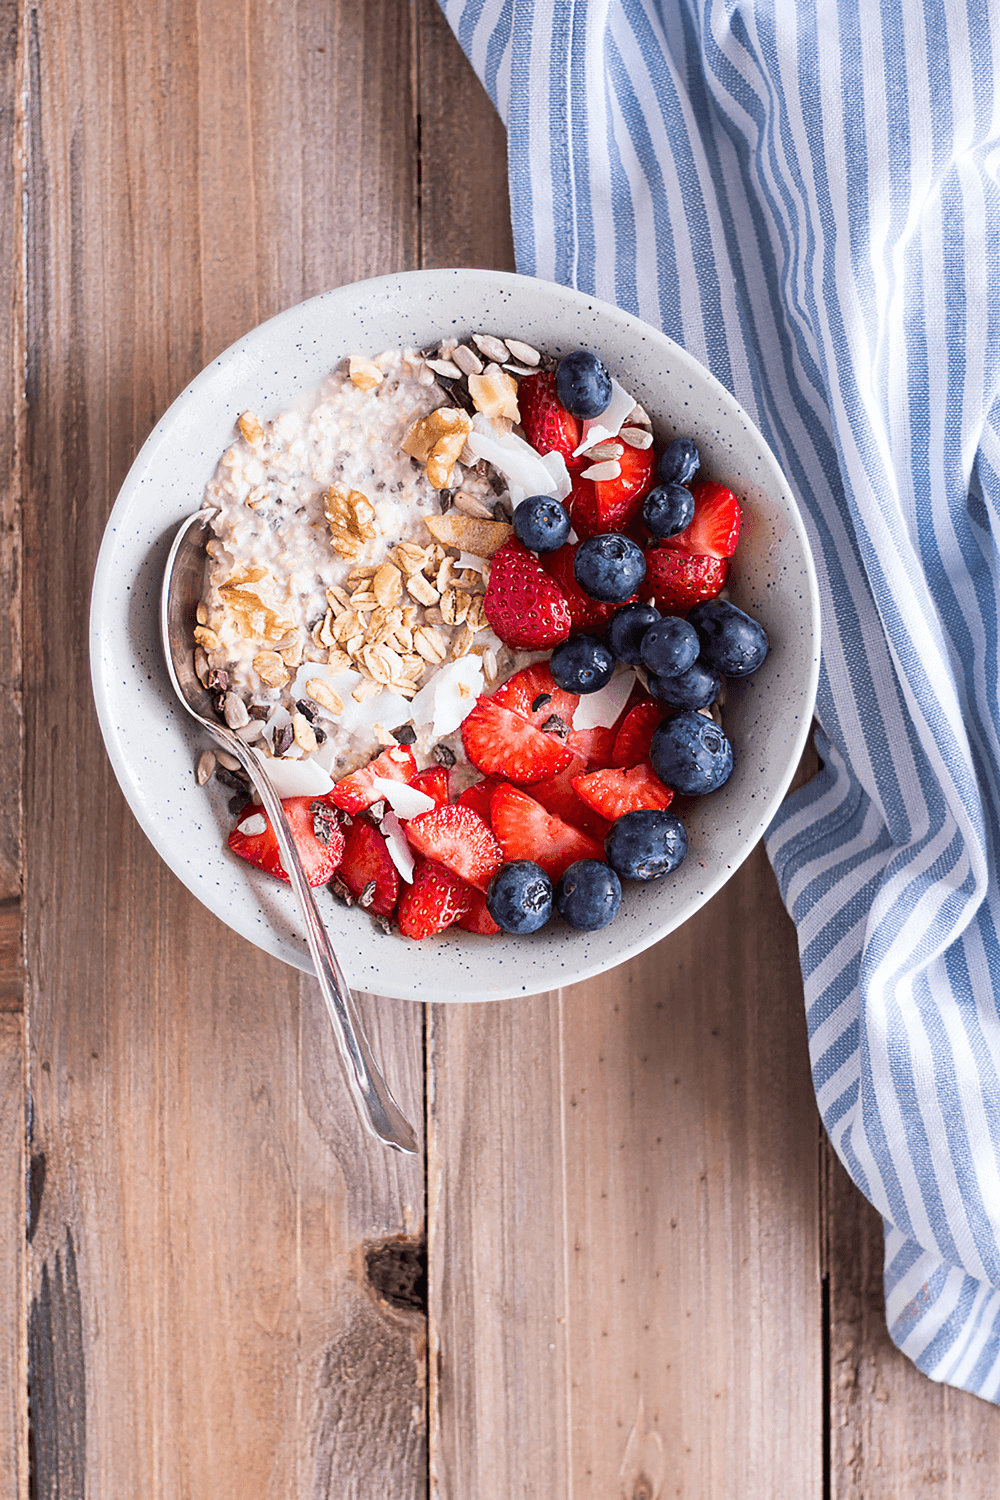 bowl of oats, strawberries, and blueberries